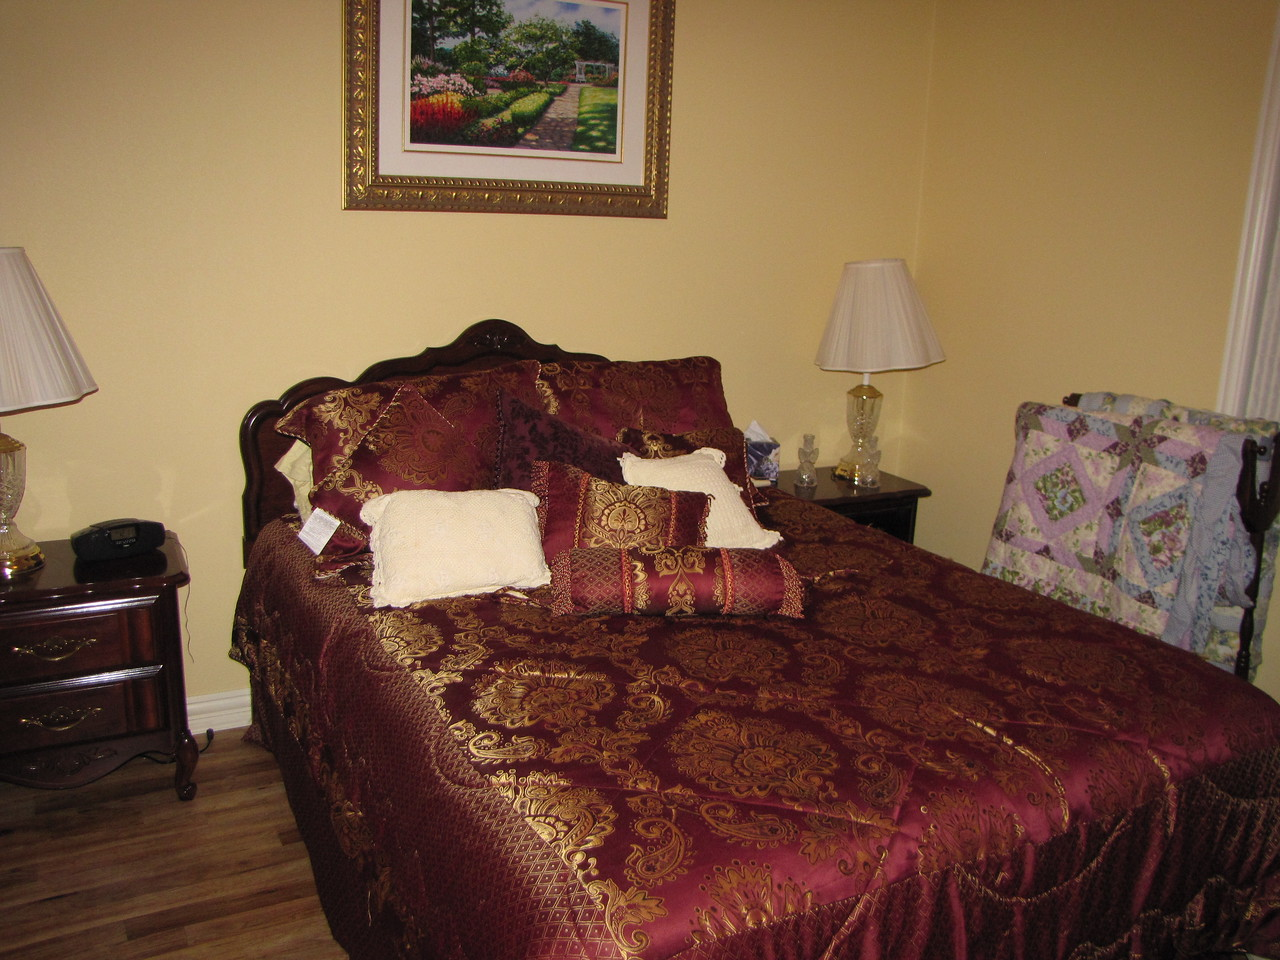 Come stay with us! Green Acres Garden B&B - Luxury in the country! Private Cottage on Lake Lavon...